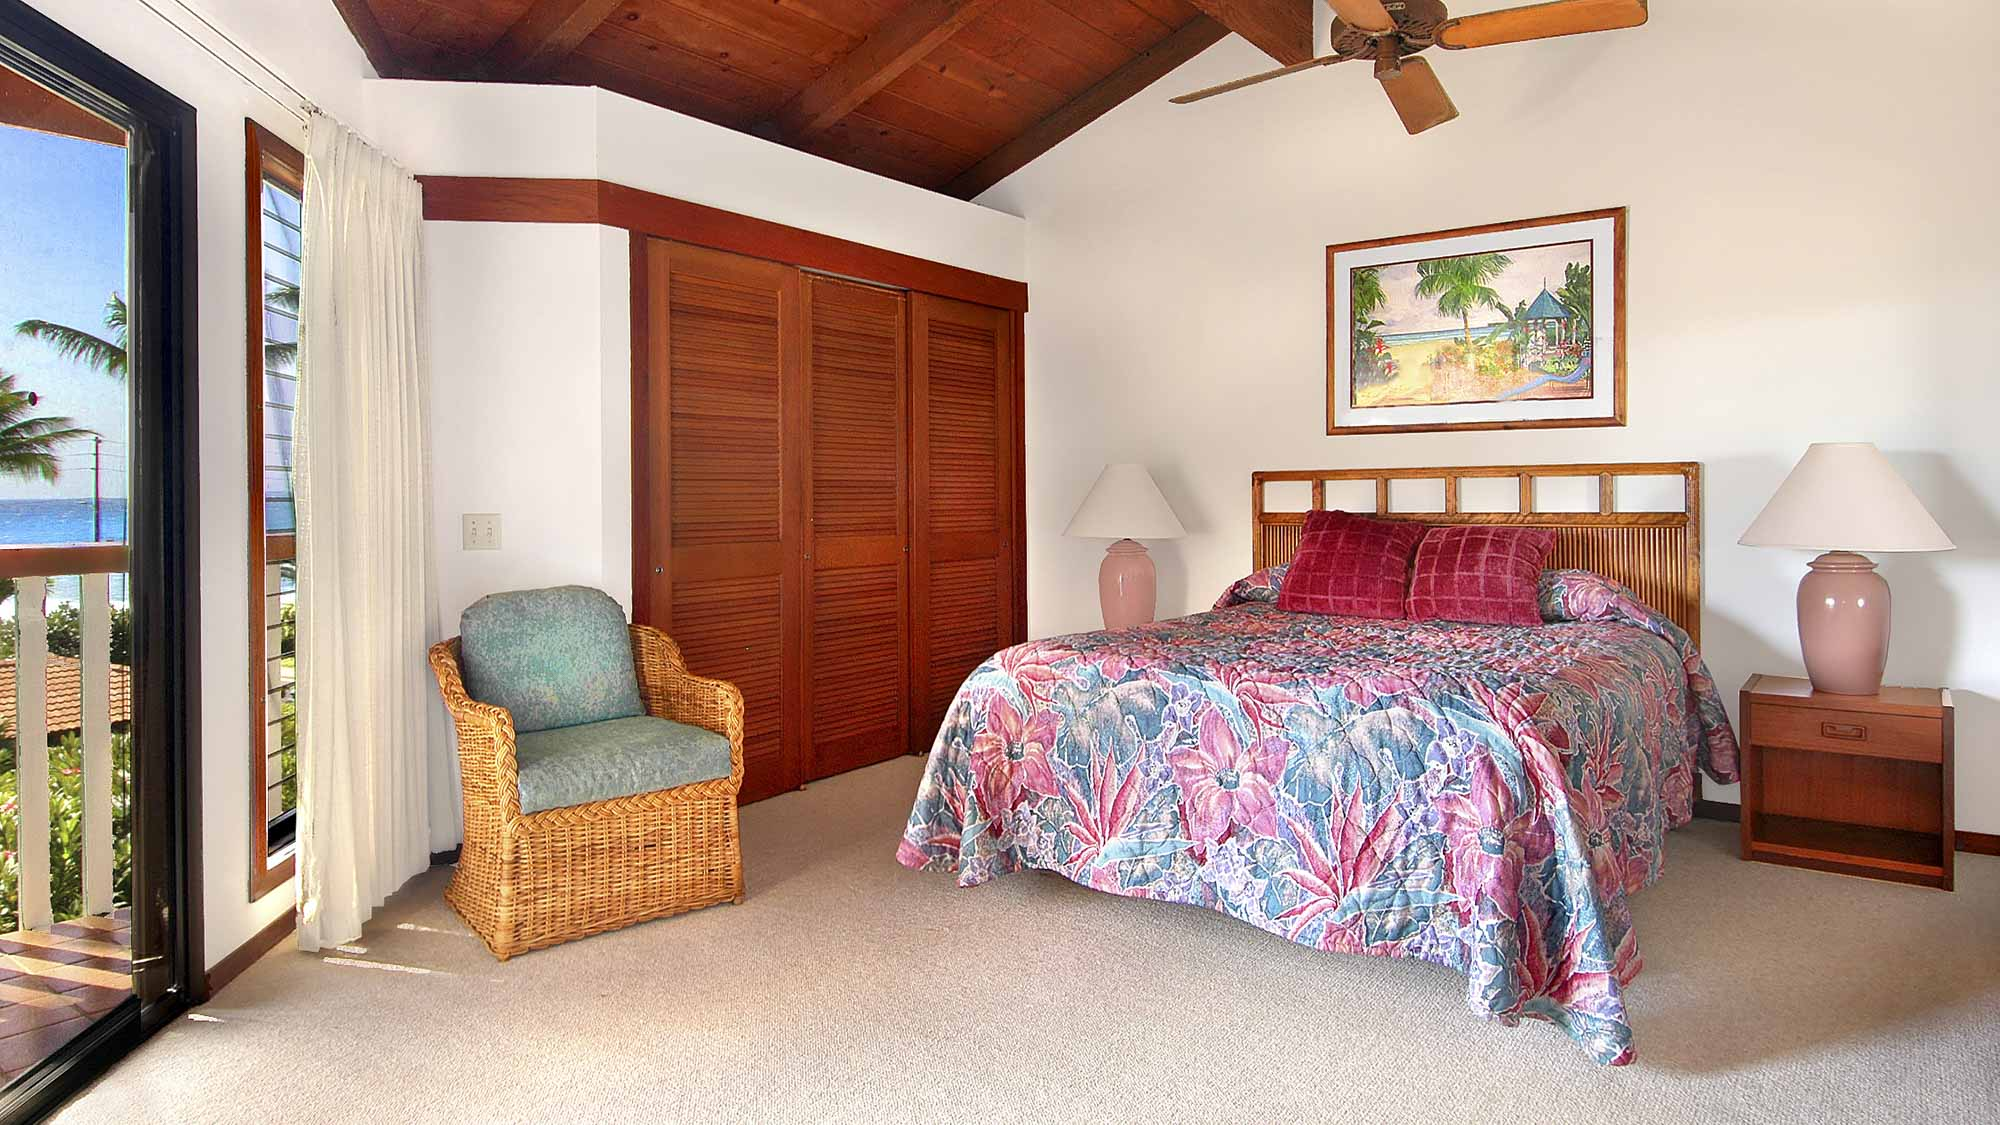 Nihi Kai Villas at Poipu #421 - Master Bedroom Suite & Lanai View - Parrish Kauai